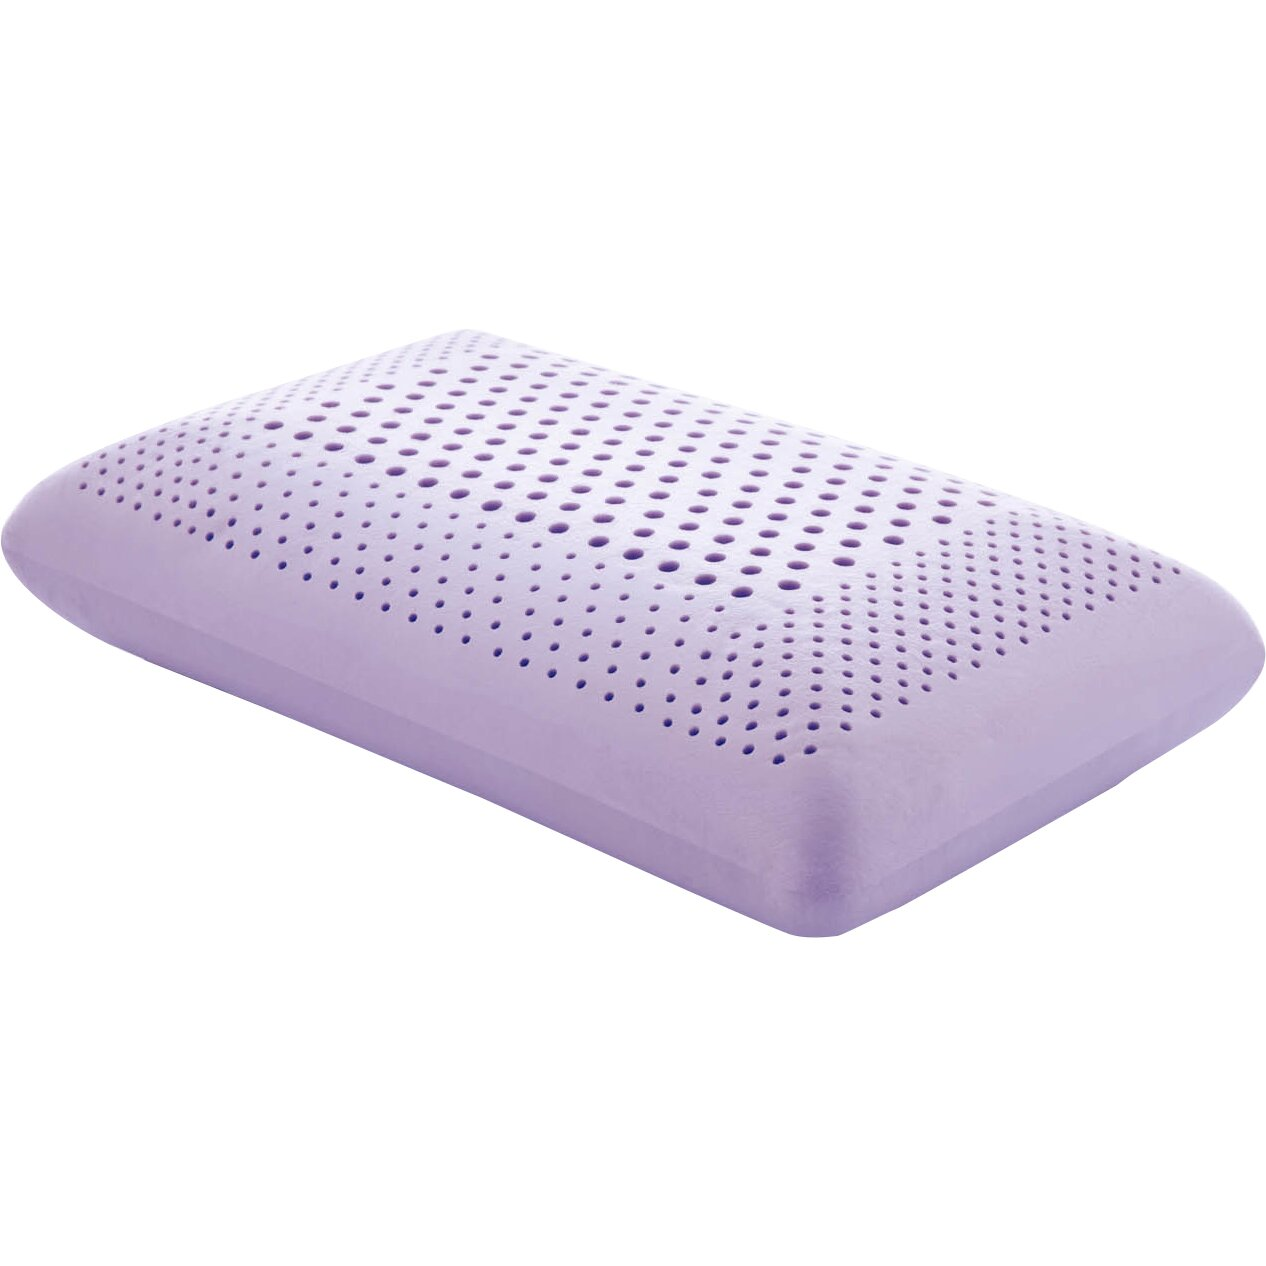 Malouf Zoned Dough Lavender Oil Infused Memory Foam Pillow